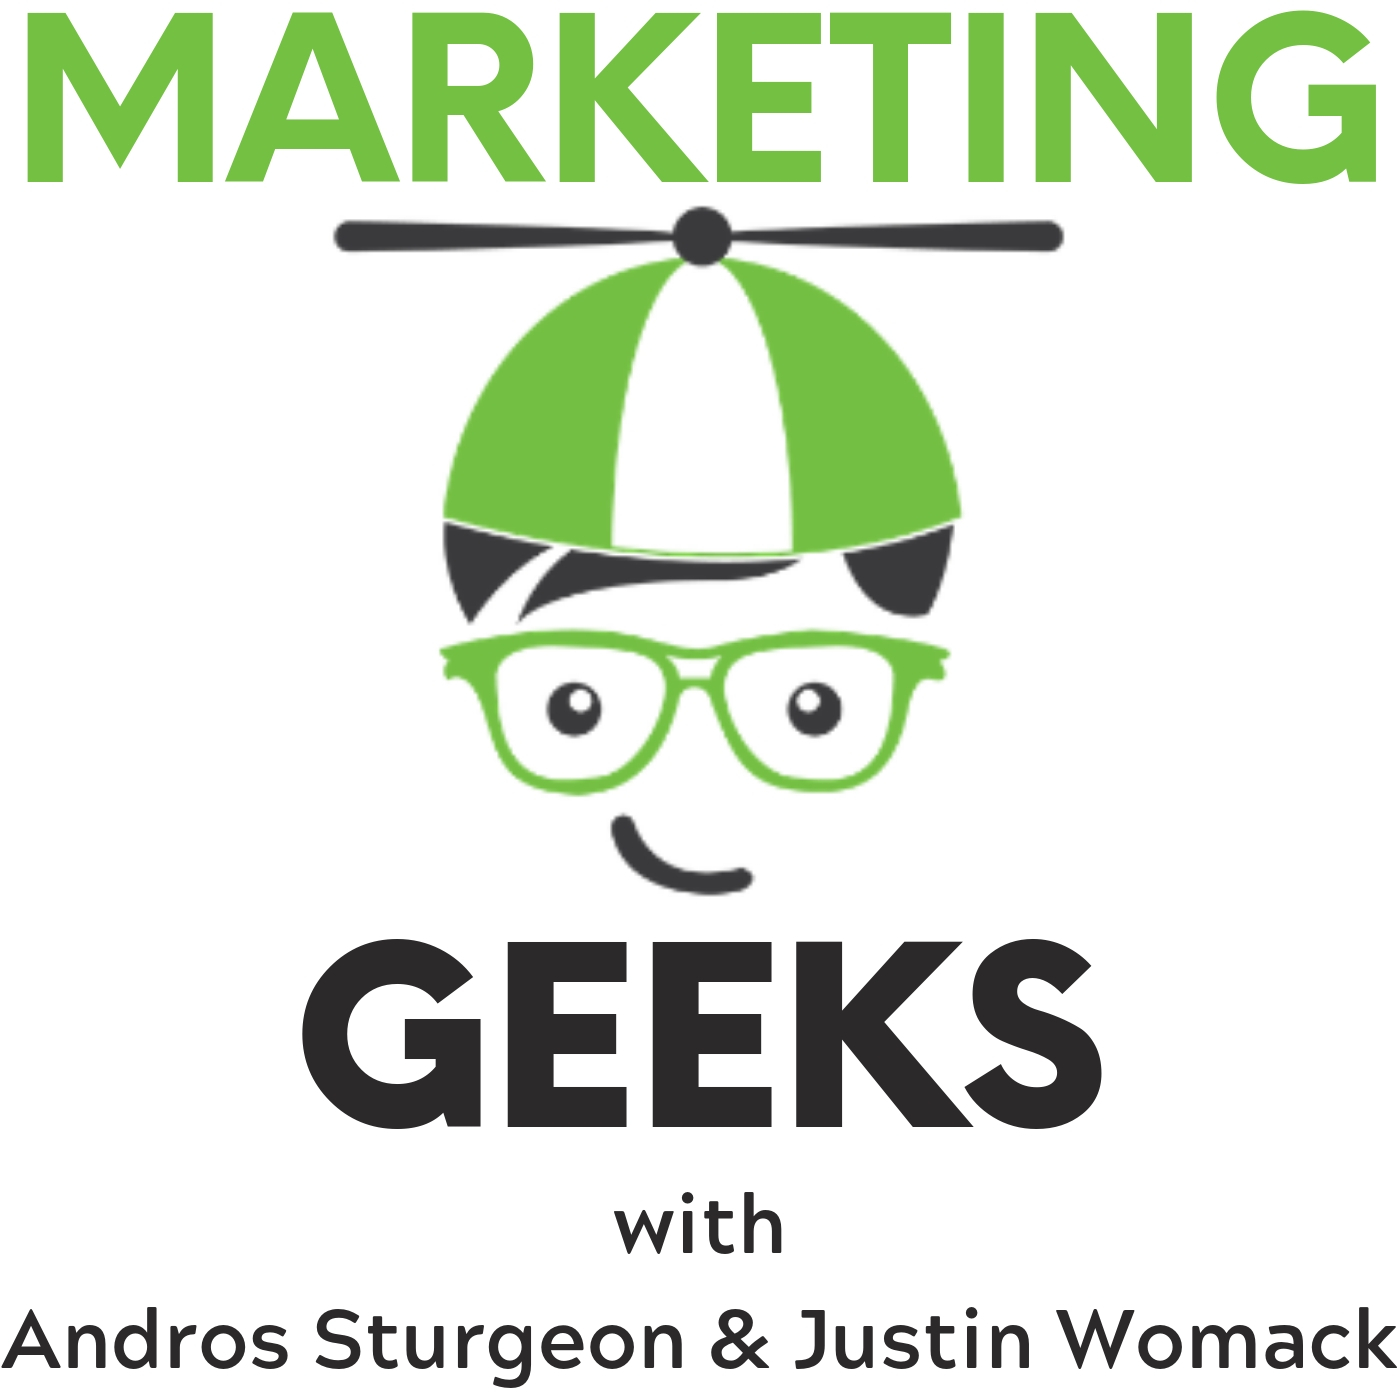 Listen to the Marketing Geeks Podcast… - Follow the Marketing Geeks Podcast and Blog series to stay up-to-date on the latest tips, tricks, and strategies in the area of online marketing. The Marketing Geeks Podcast is hosted by Justin Womack and Andros Sturgeon. You can also listen to the show via iTunes, Apple Podcasts, GooglePlay, Google Podcasts, Spotify, or all major platforms.